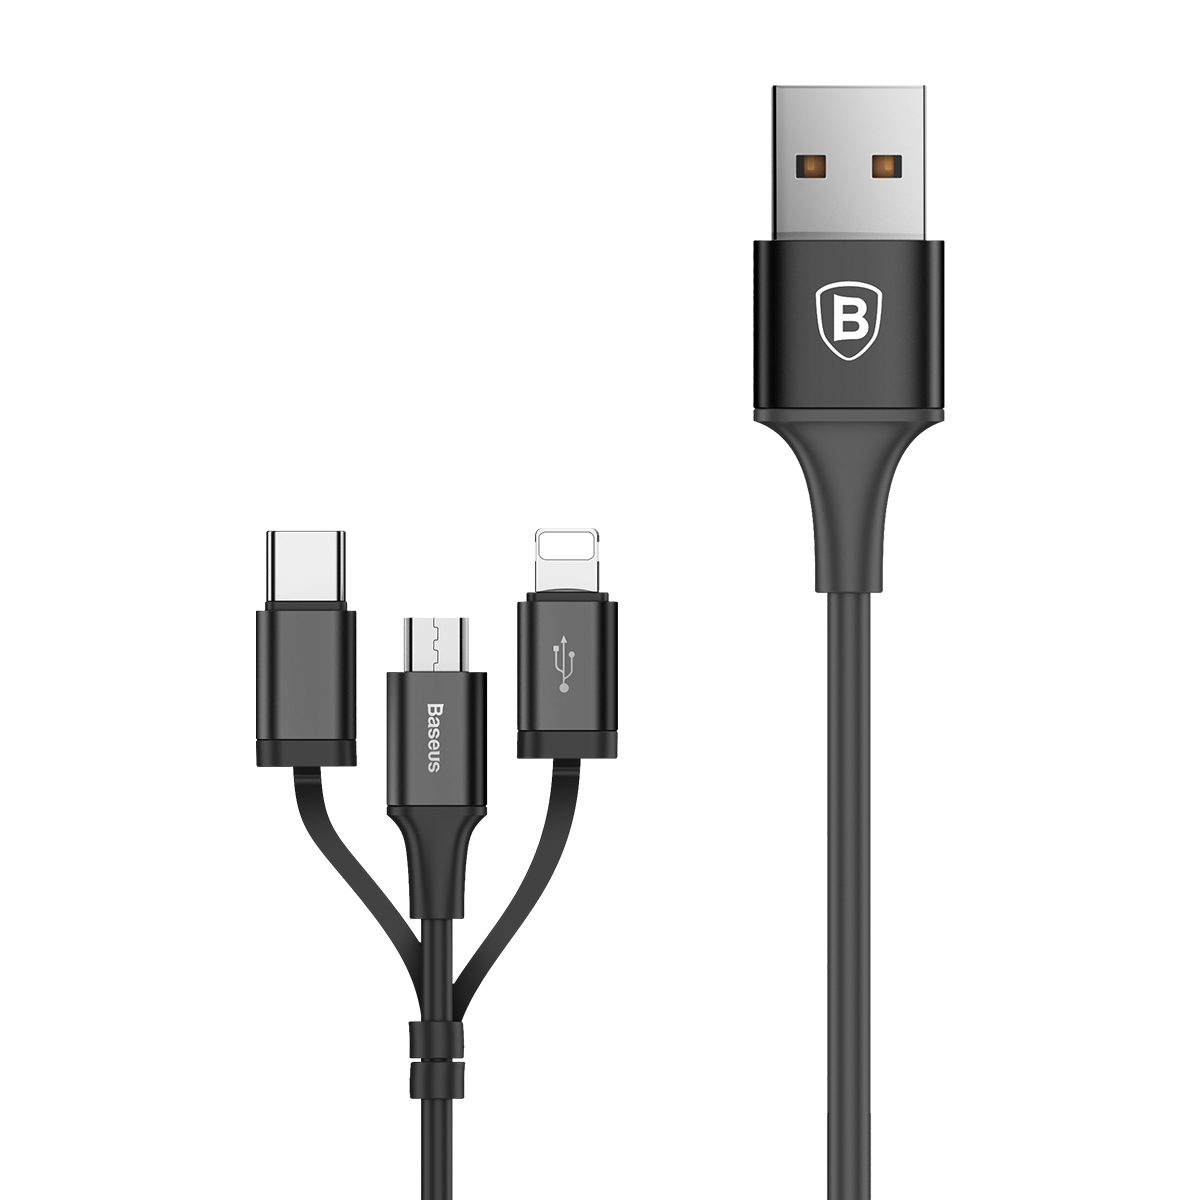 Cabo Baseus Excellent 3in1 USB - Micro USB / Lightning / Type-C 2A 1.2m